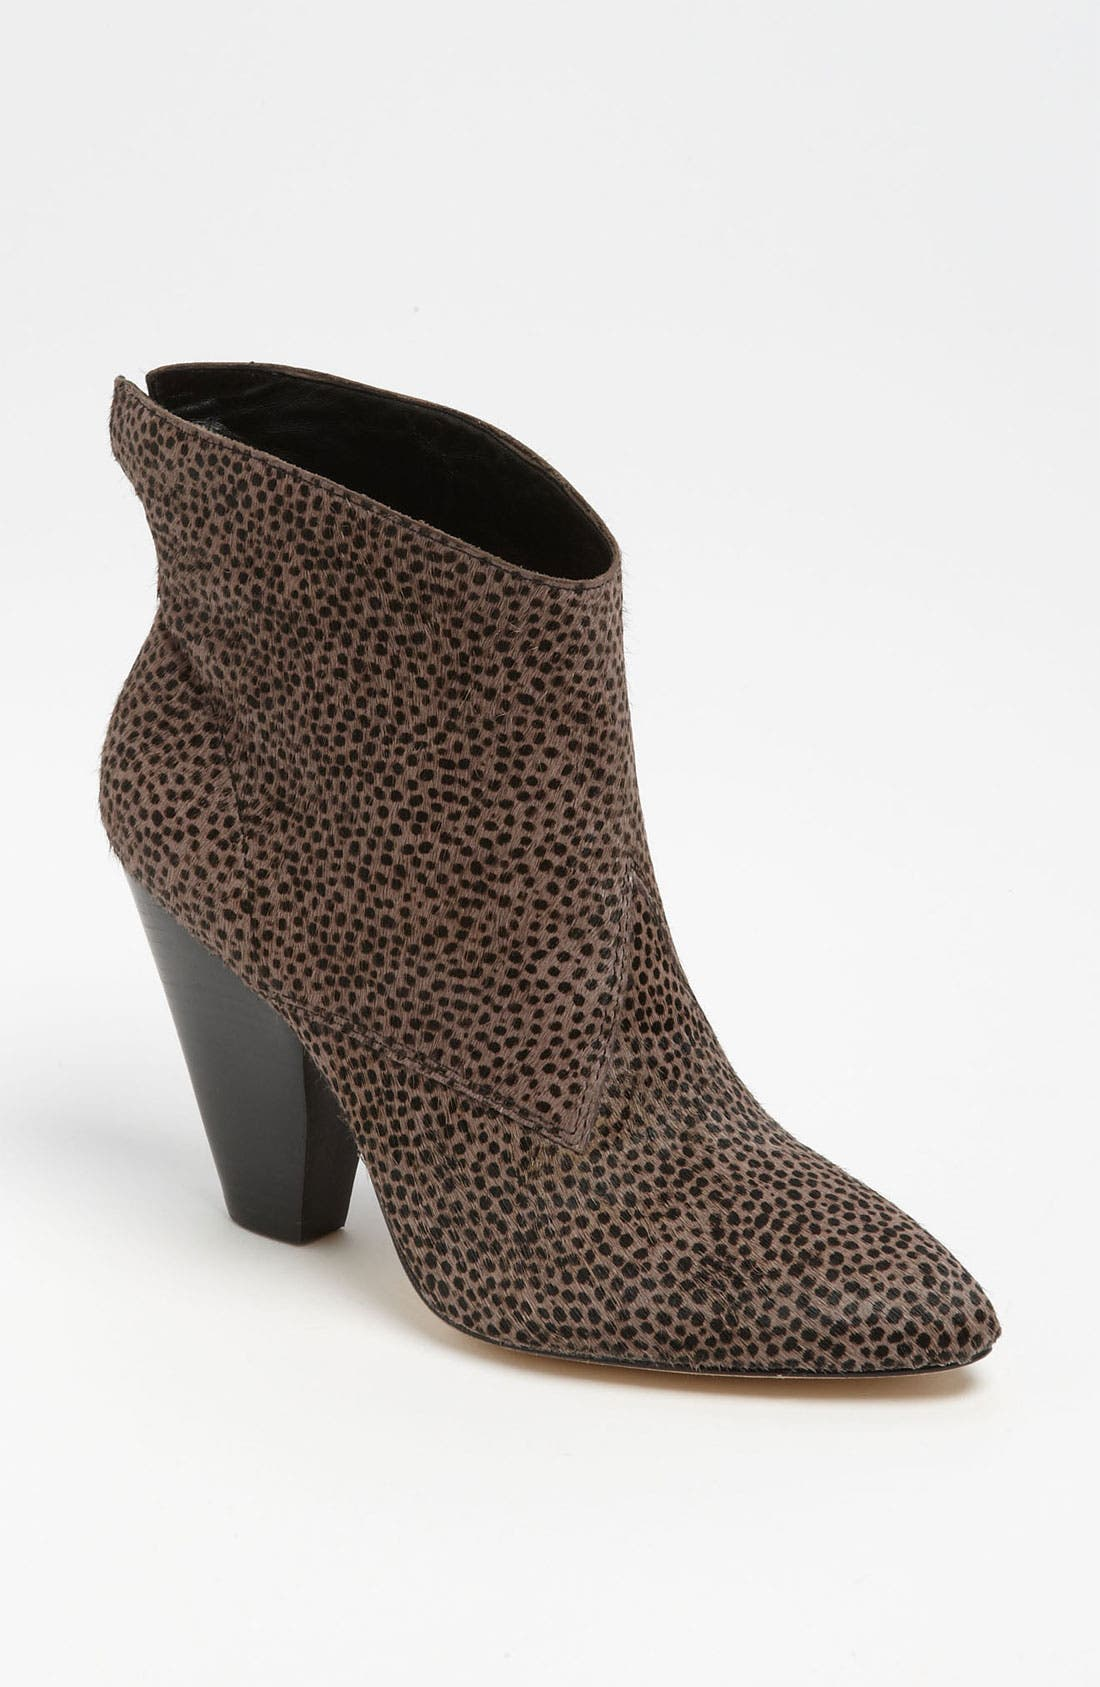 Alternate Image 1 Selected - Belle by Sigerson Morrison 'Markelly' Bootie